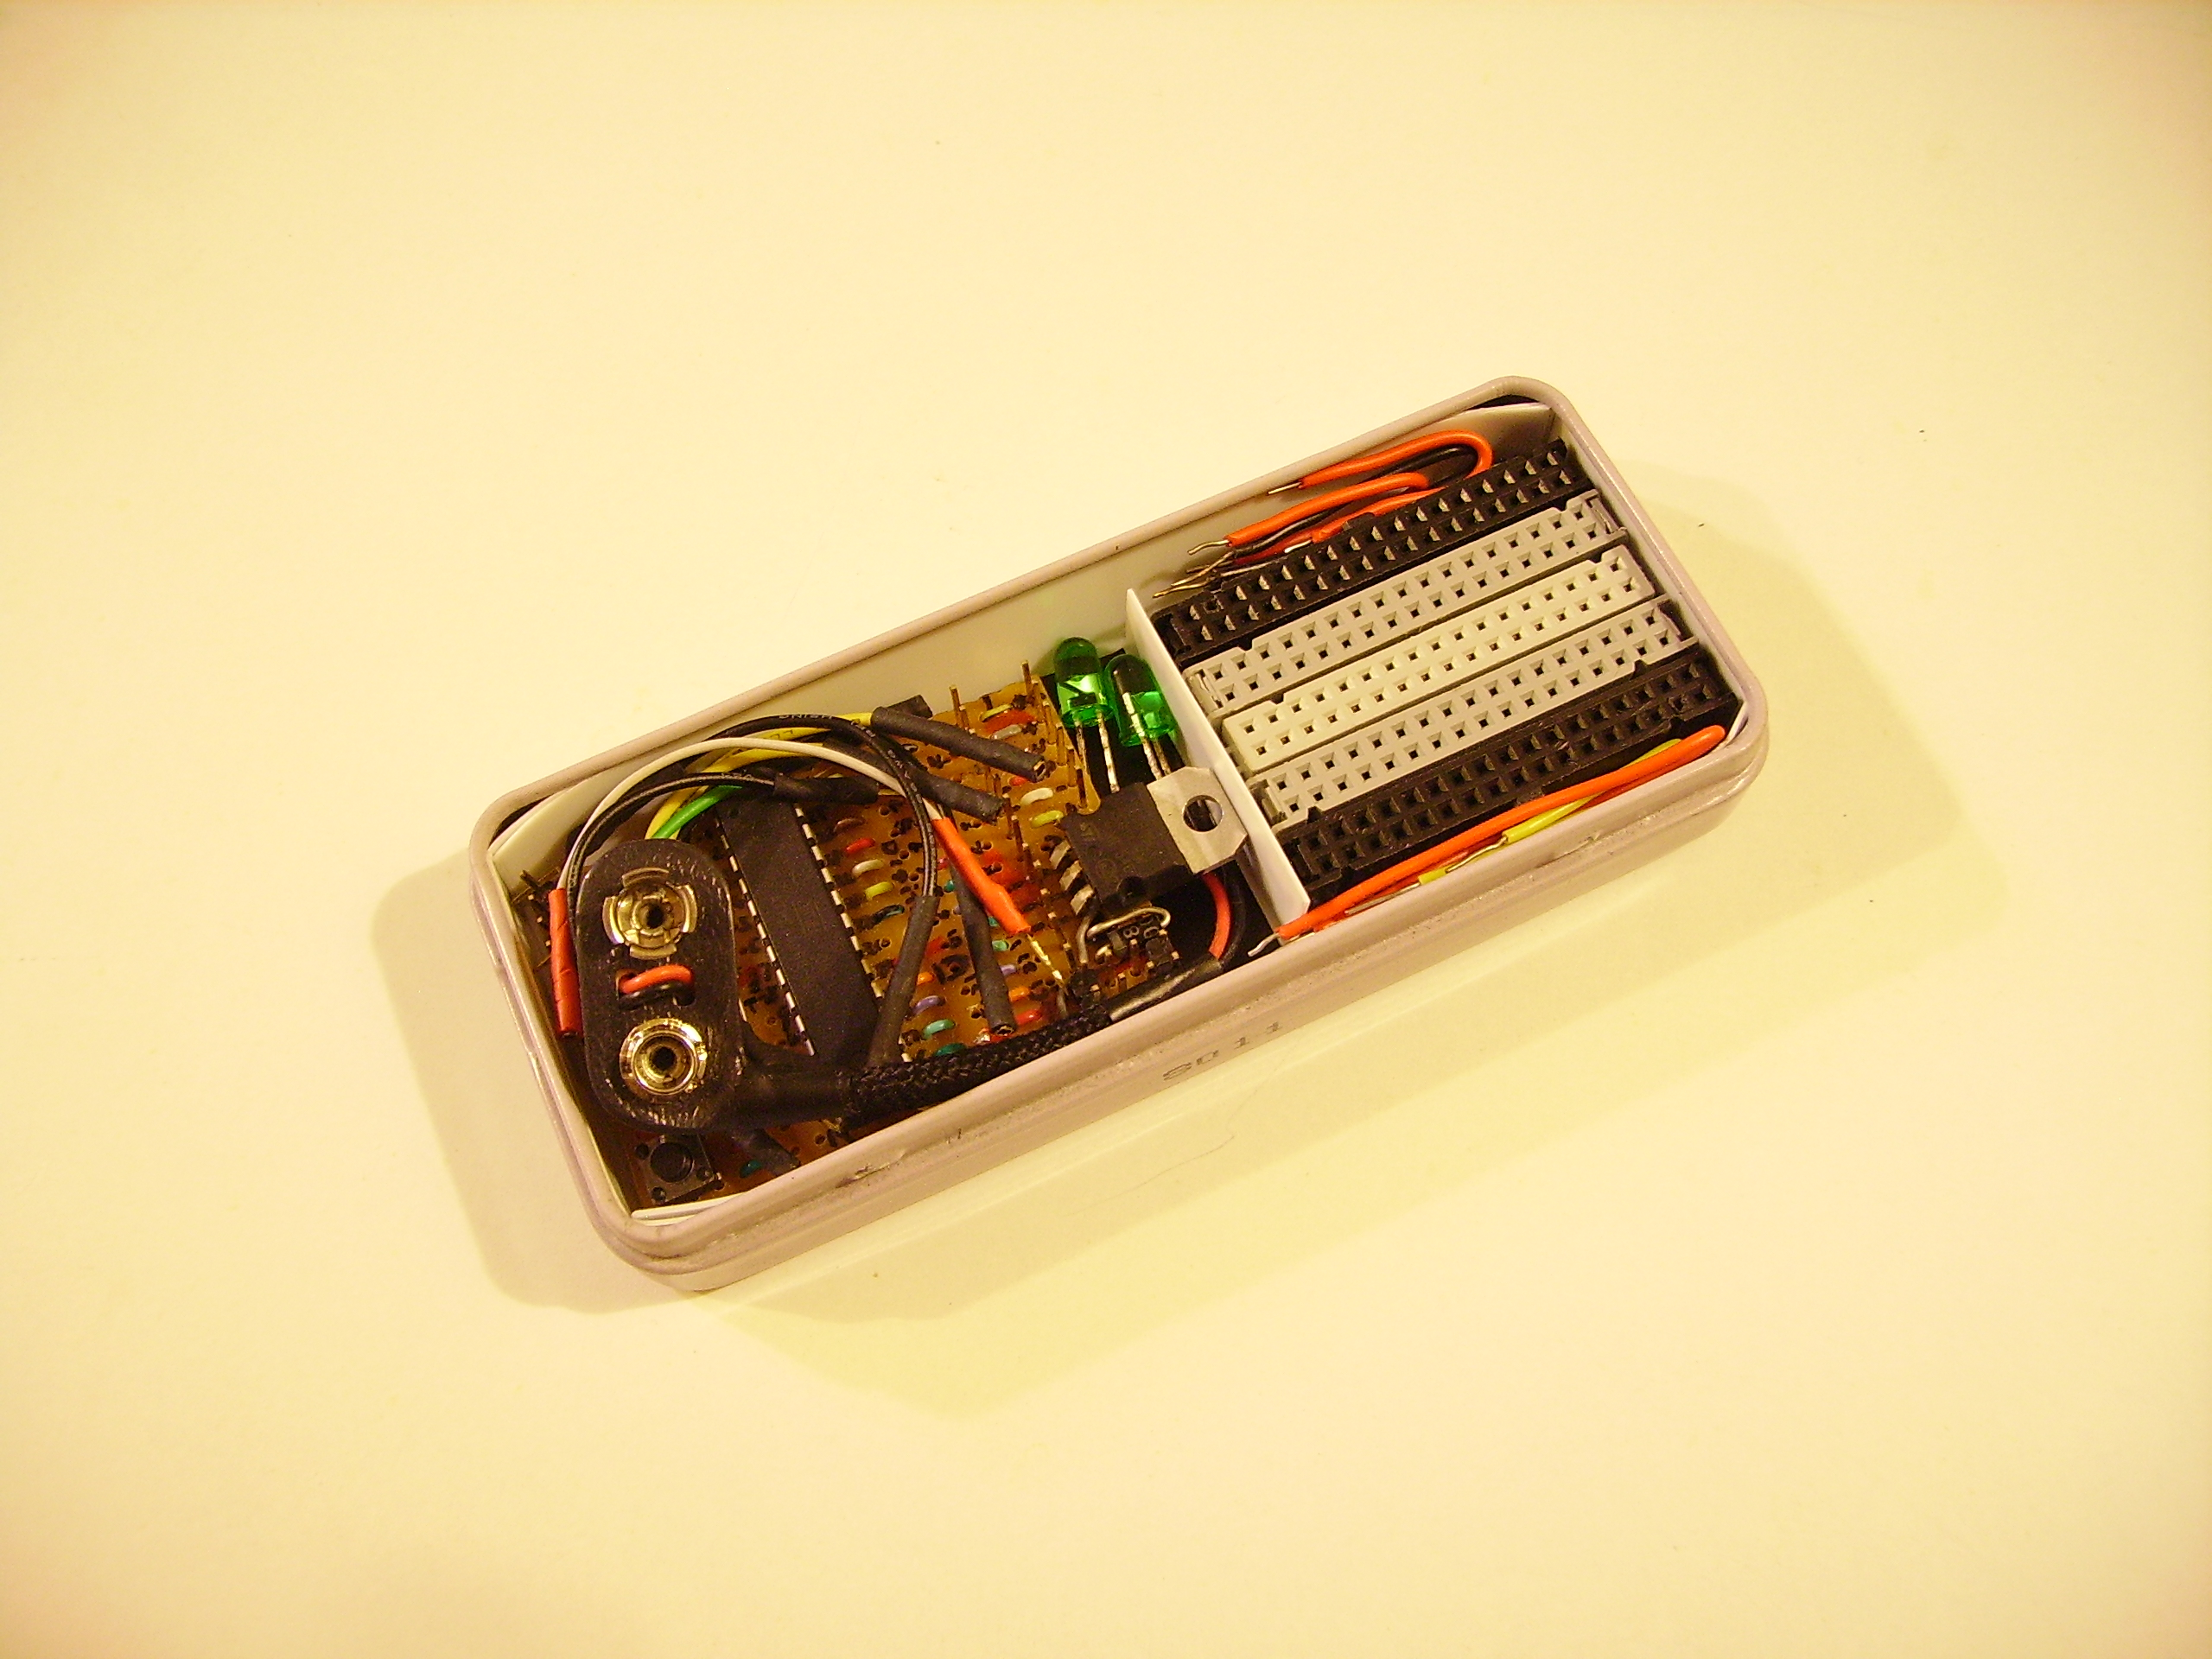 Pocket Arduino kit.